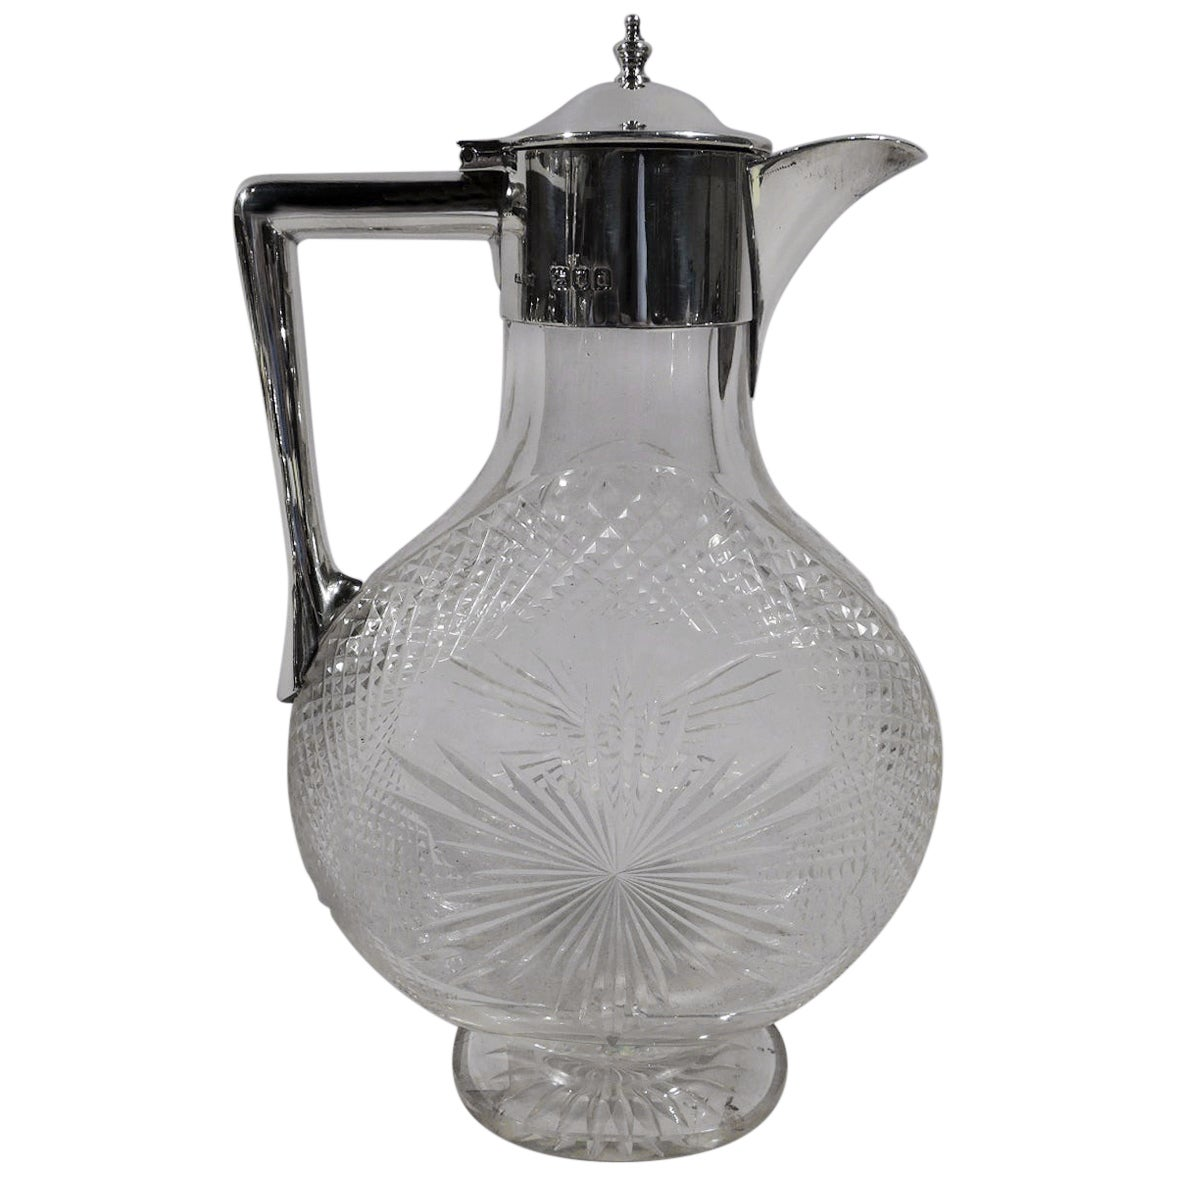 Antique English Victorian Sterling Silver and Cut-Glass Moon Decanter